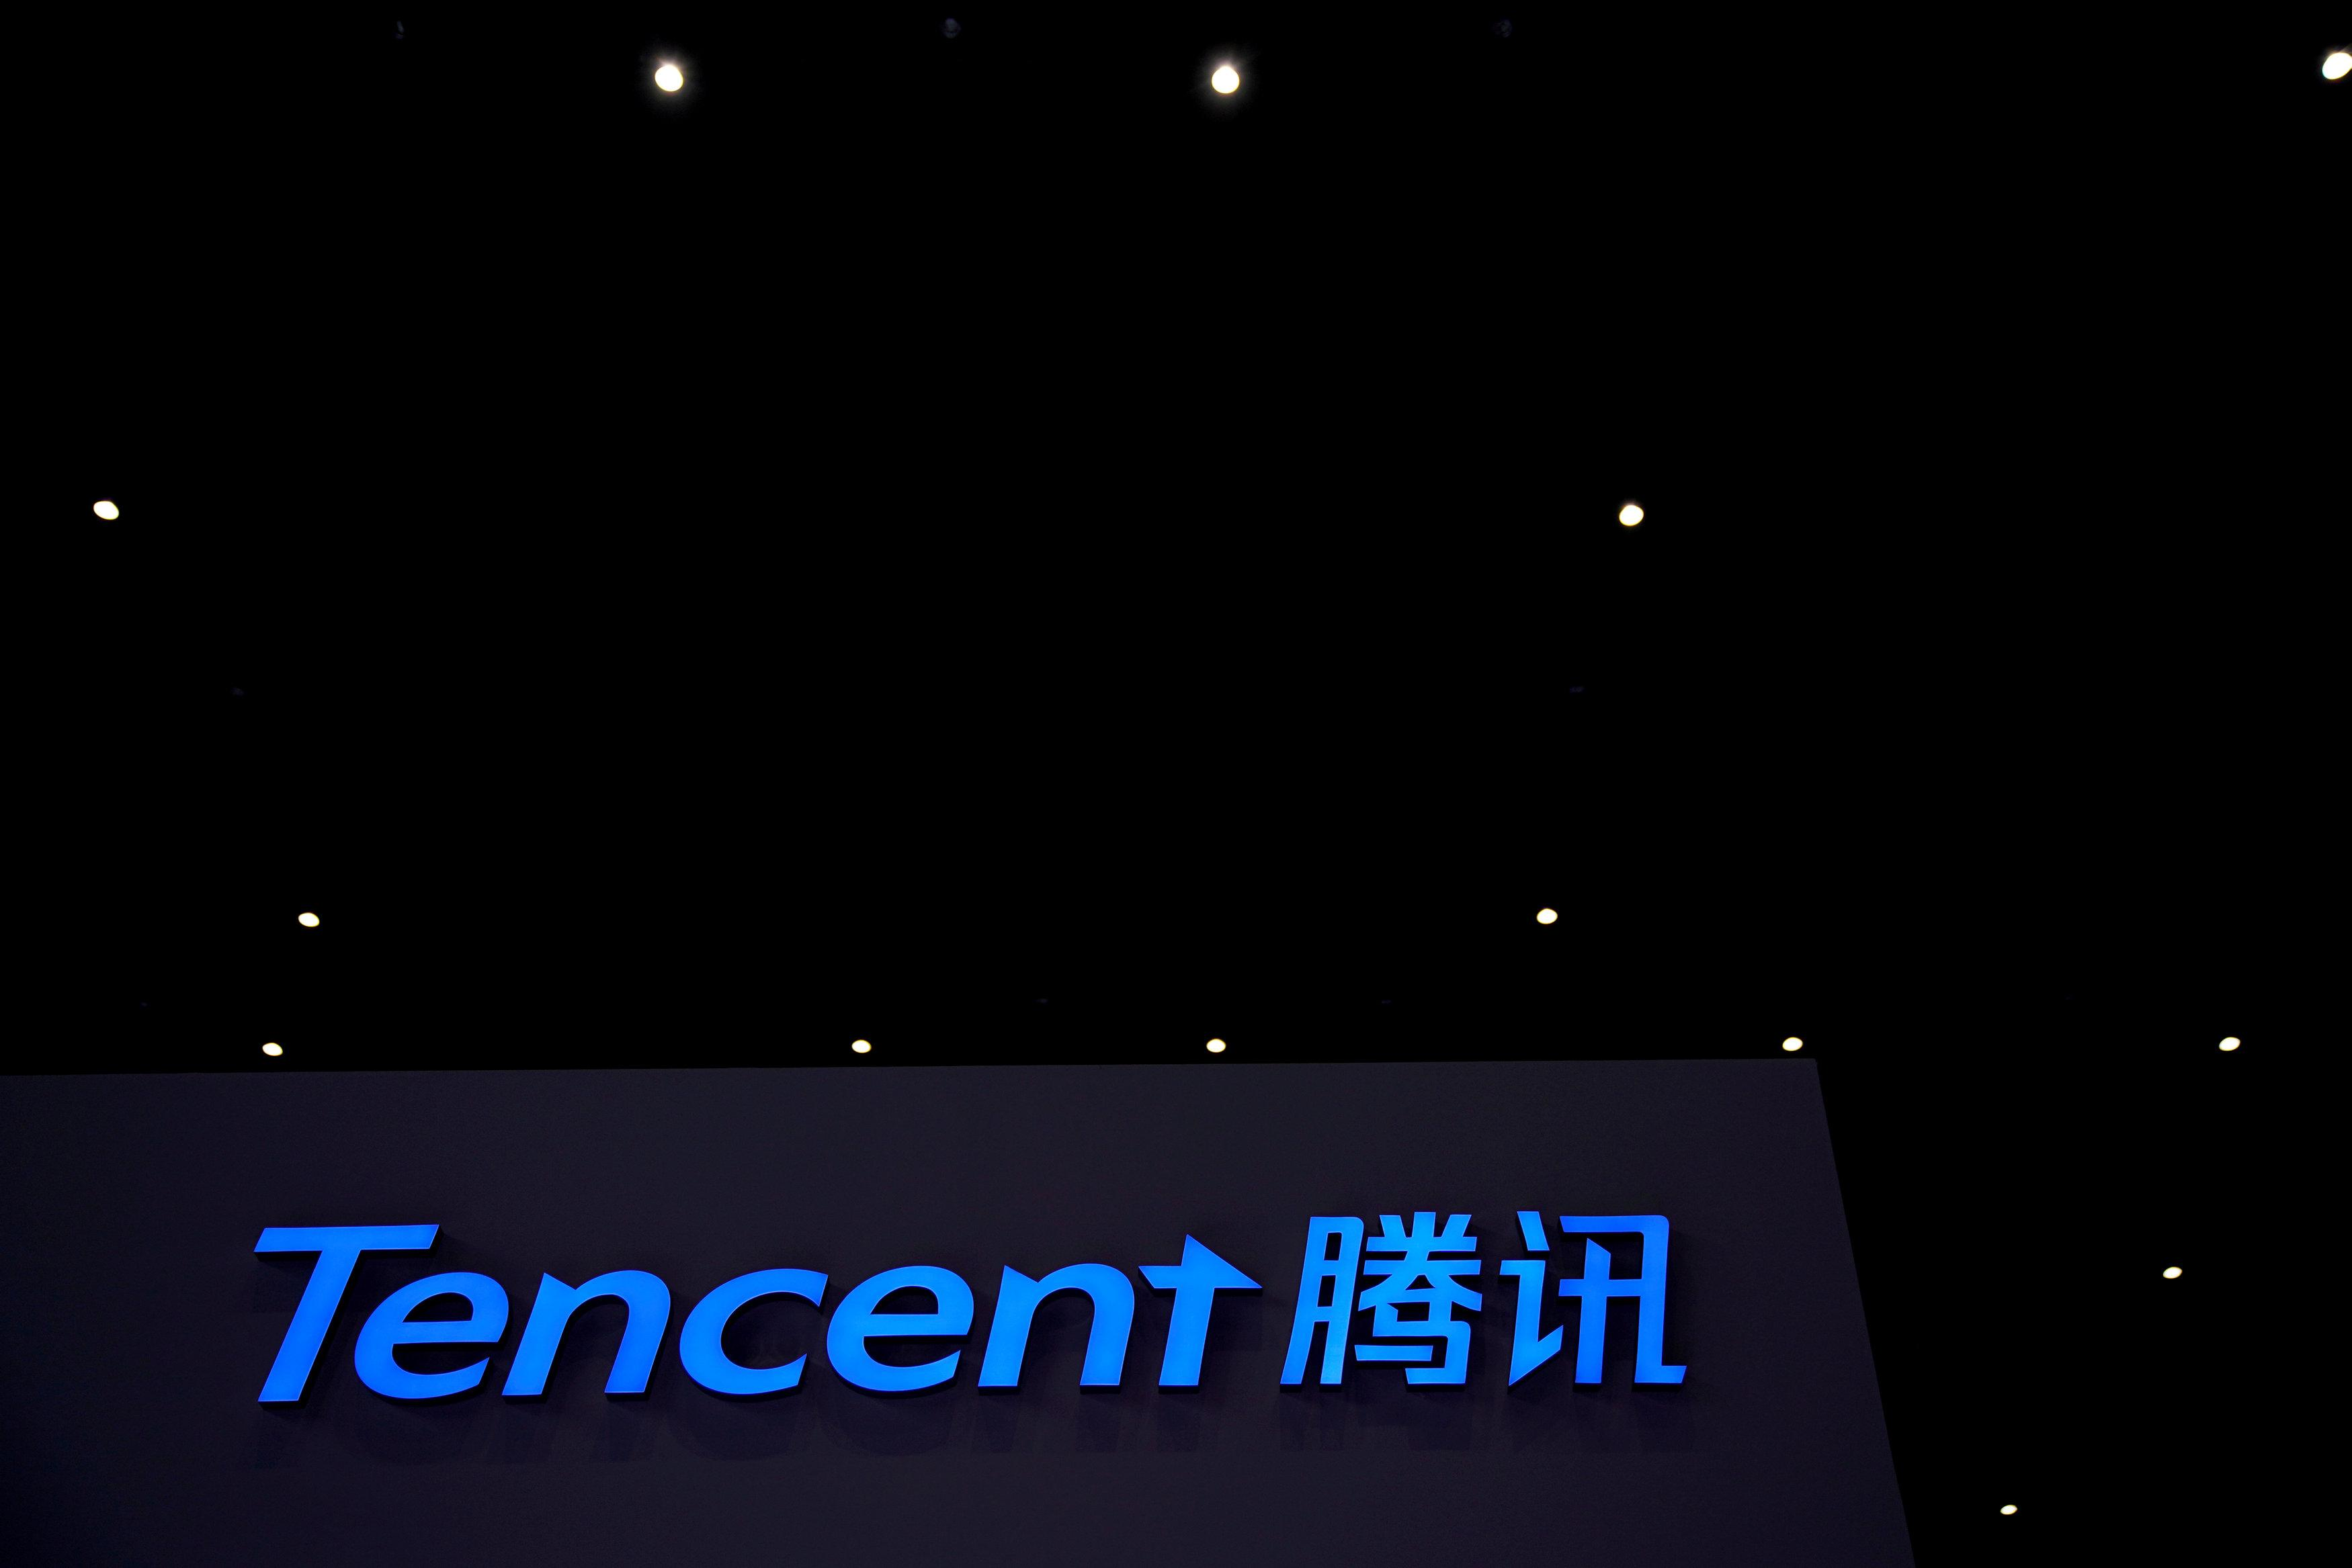 A Tencent sign is seen during the fourth World Internet Conference in Wuzhen, Zhejiang province, China, December 4, 2017. Aly Song